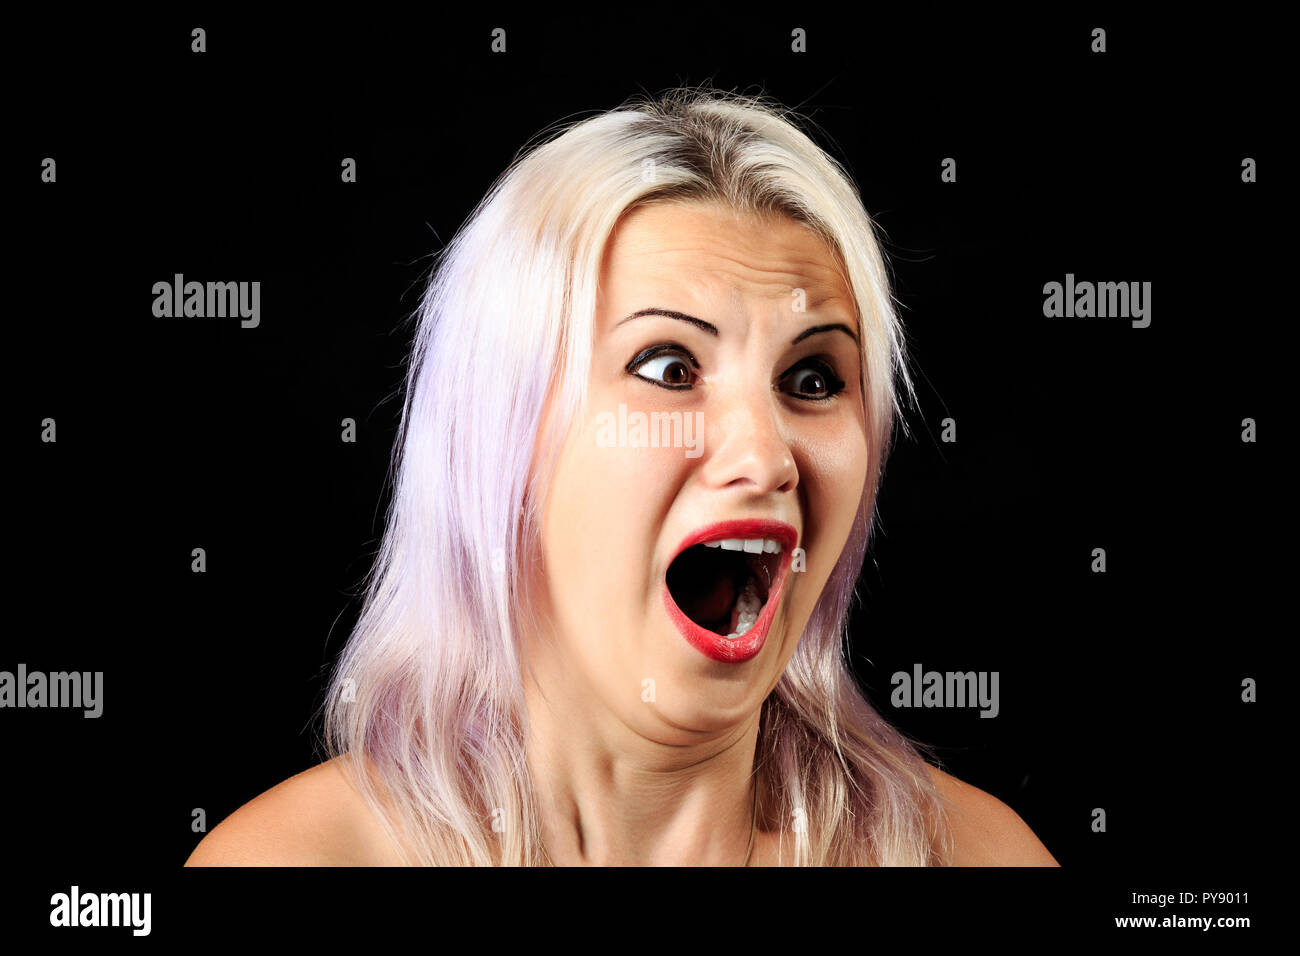 fearful female face expression, scared screaming shouting girl Stock Photo